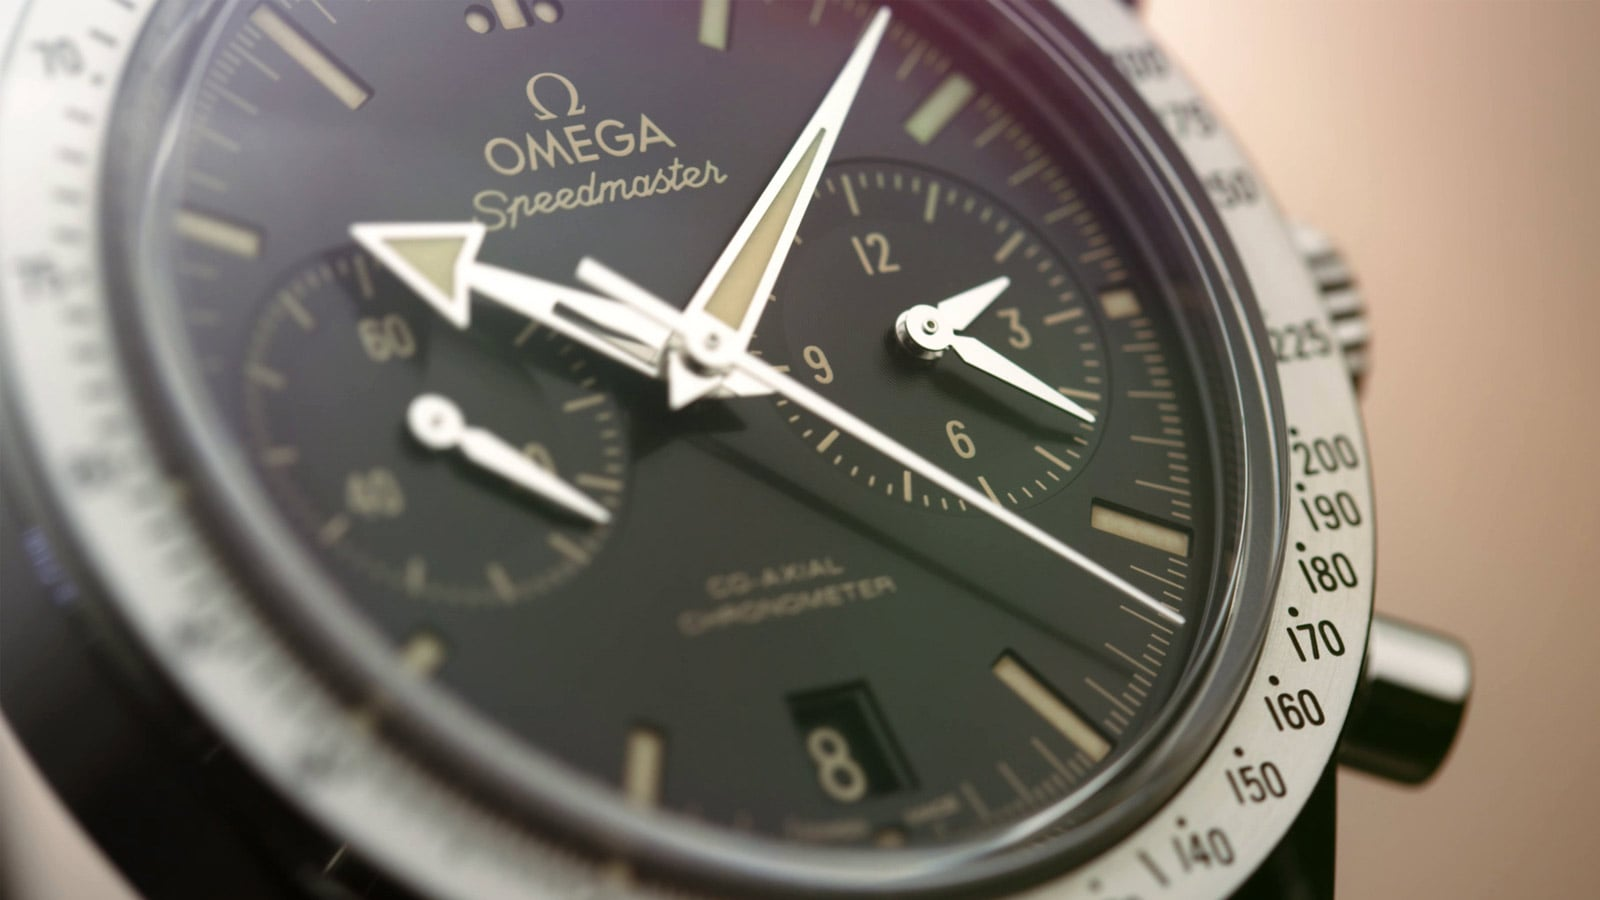 omega-hands-precision-watches-close